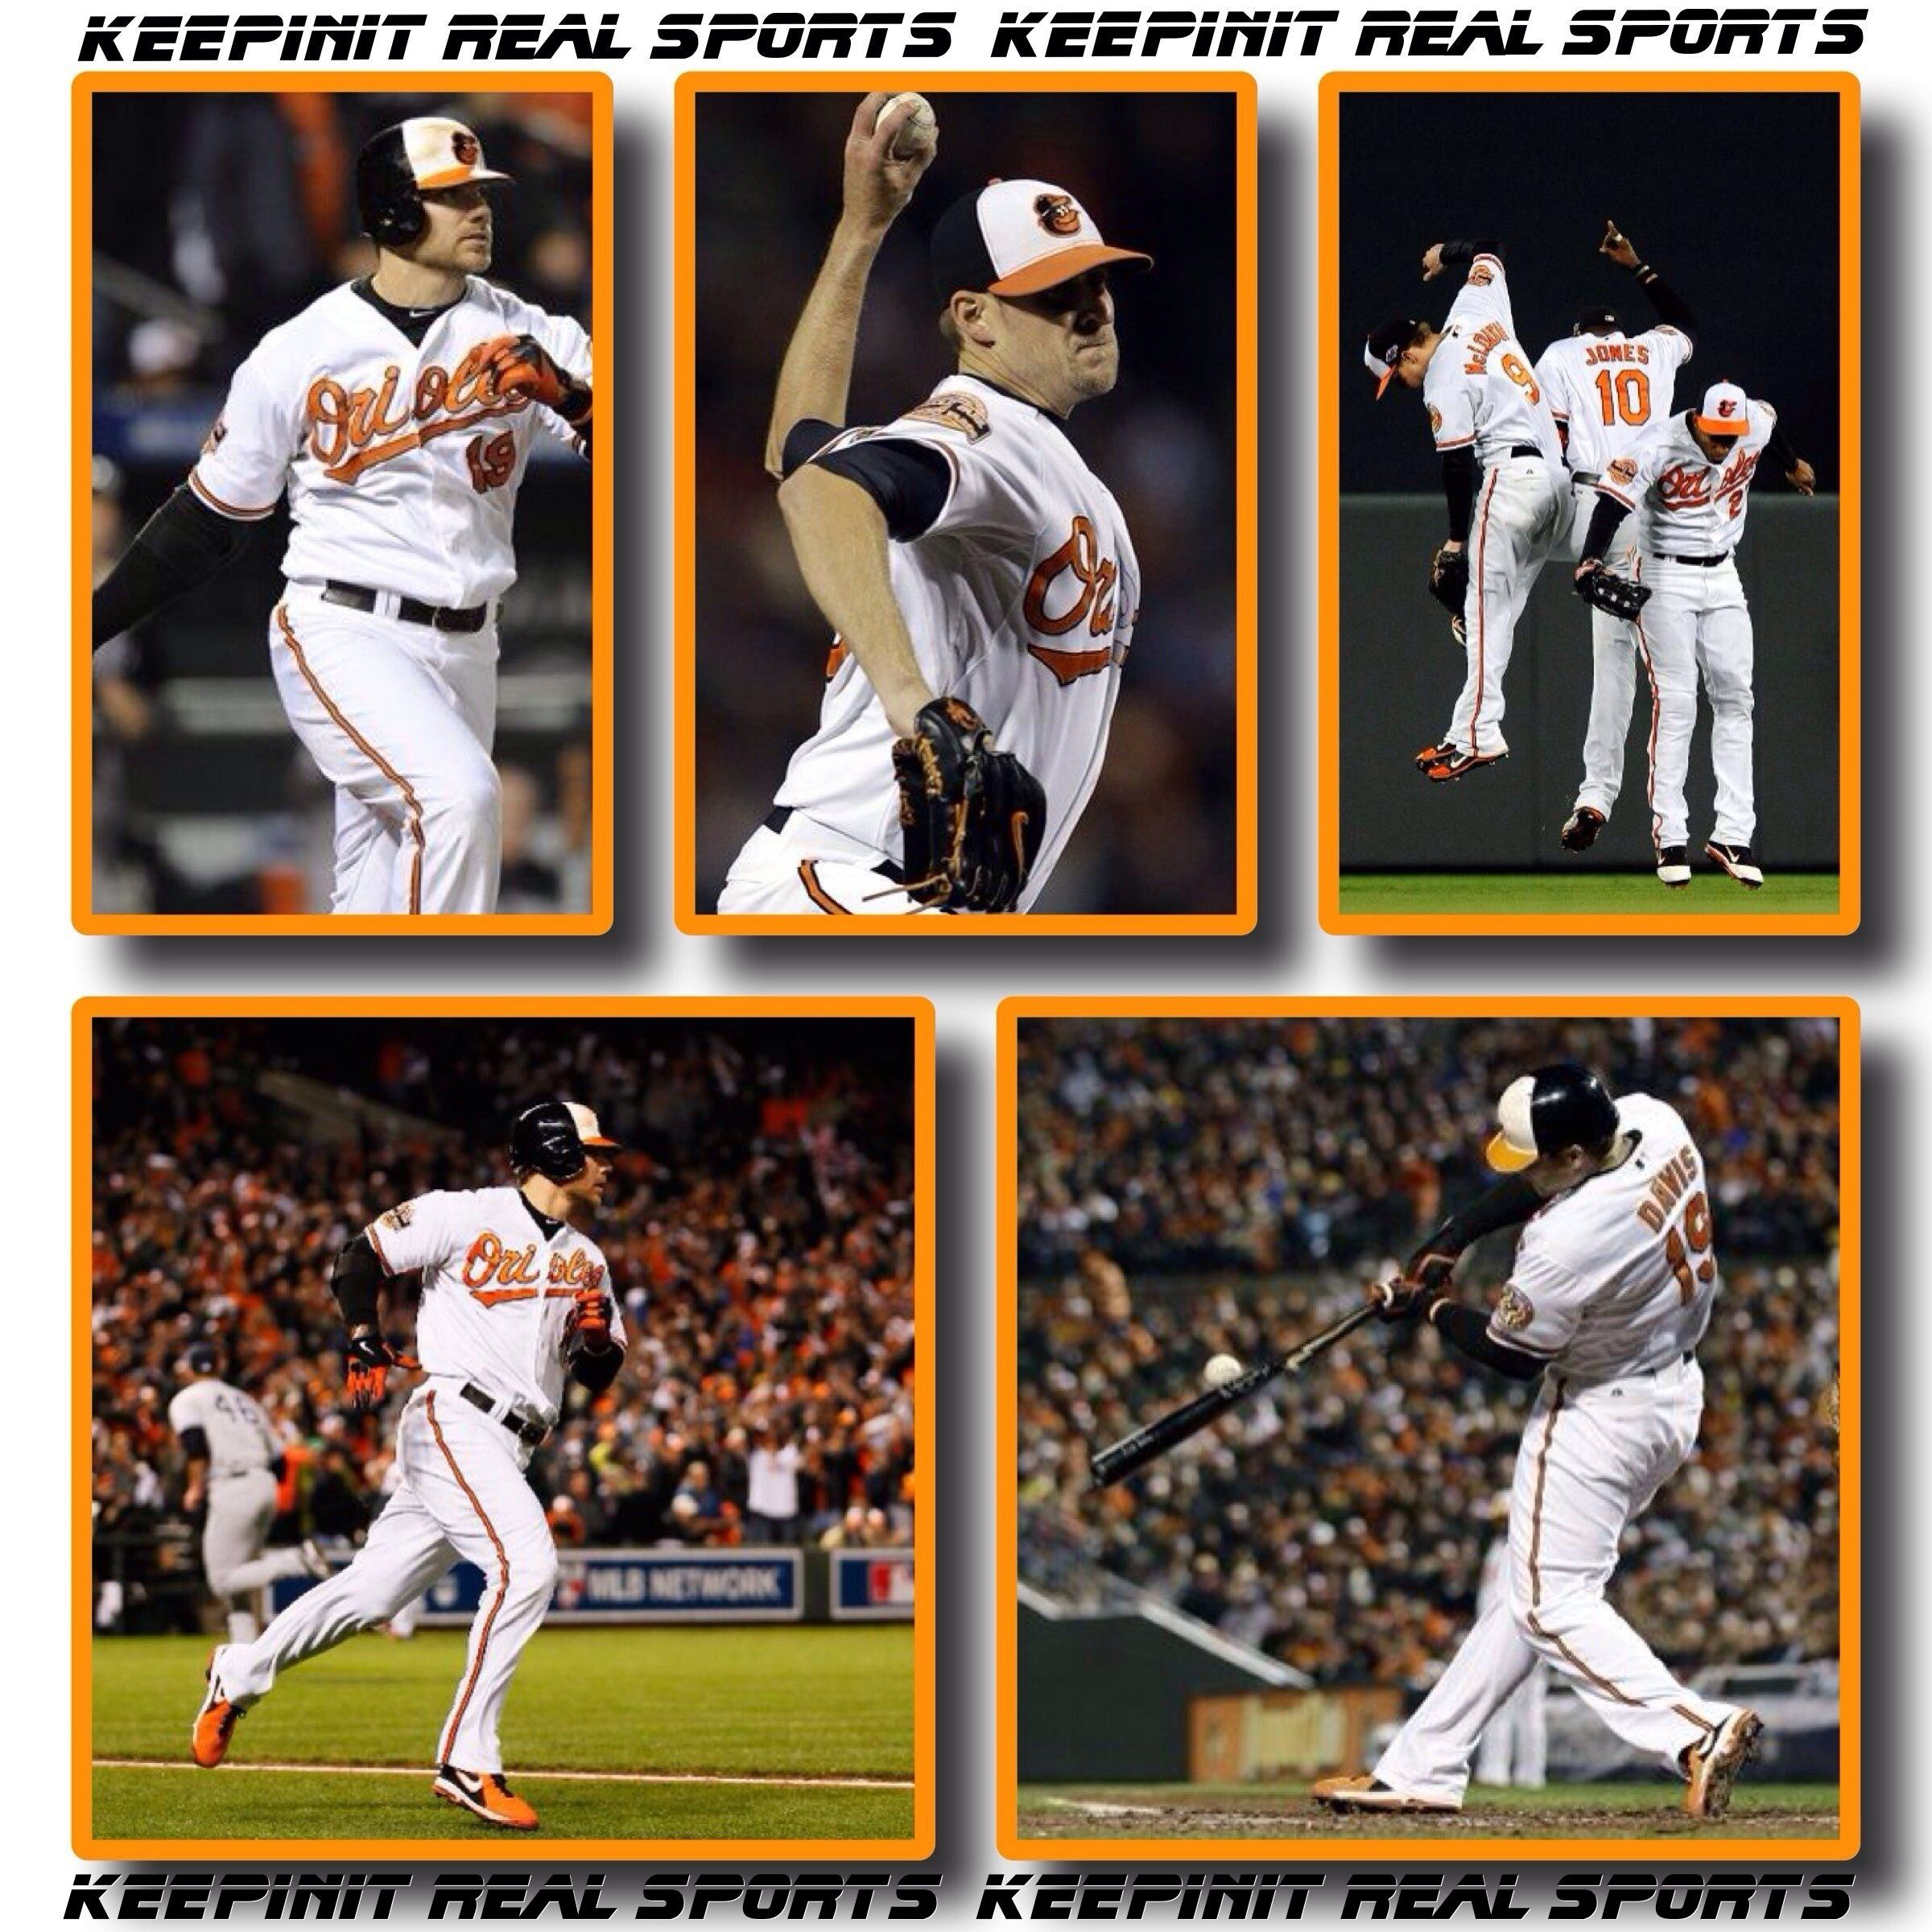 Mlb American League Division Series Yankees 2 Orioles 3 Final Series Tied 1 1 Sport 10 Sports Baseball